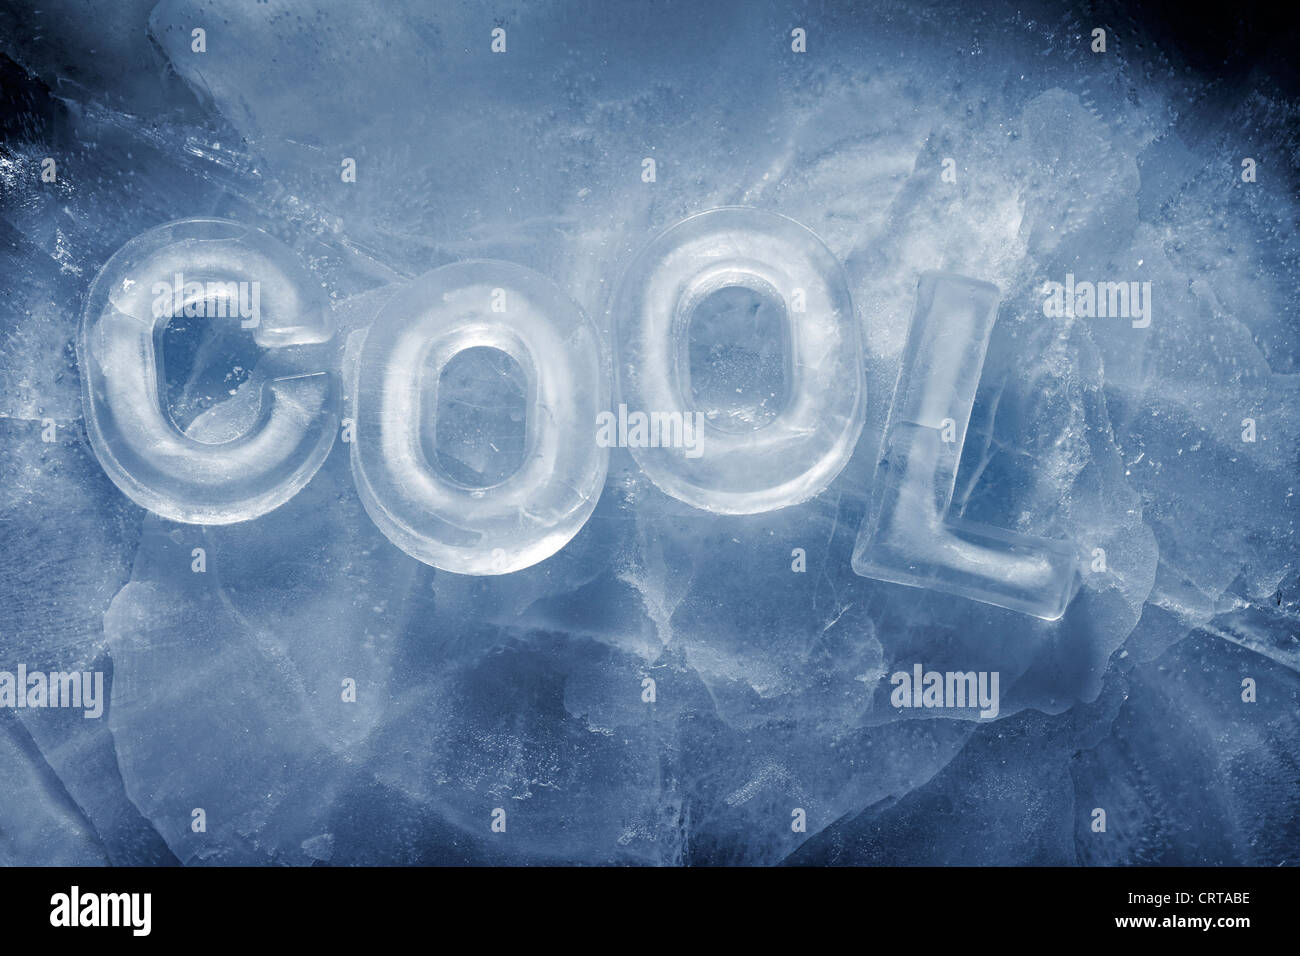 Word 'Cool' written with real ice letters. - Stock Image